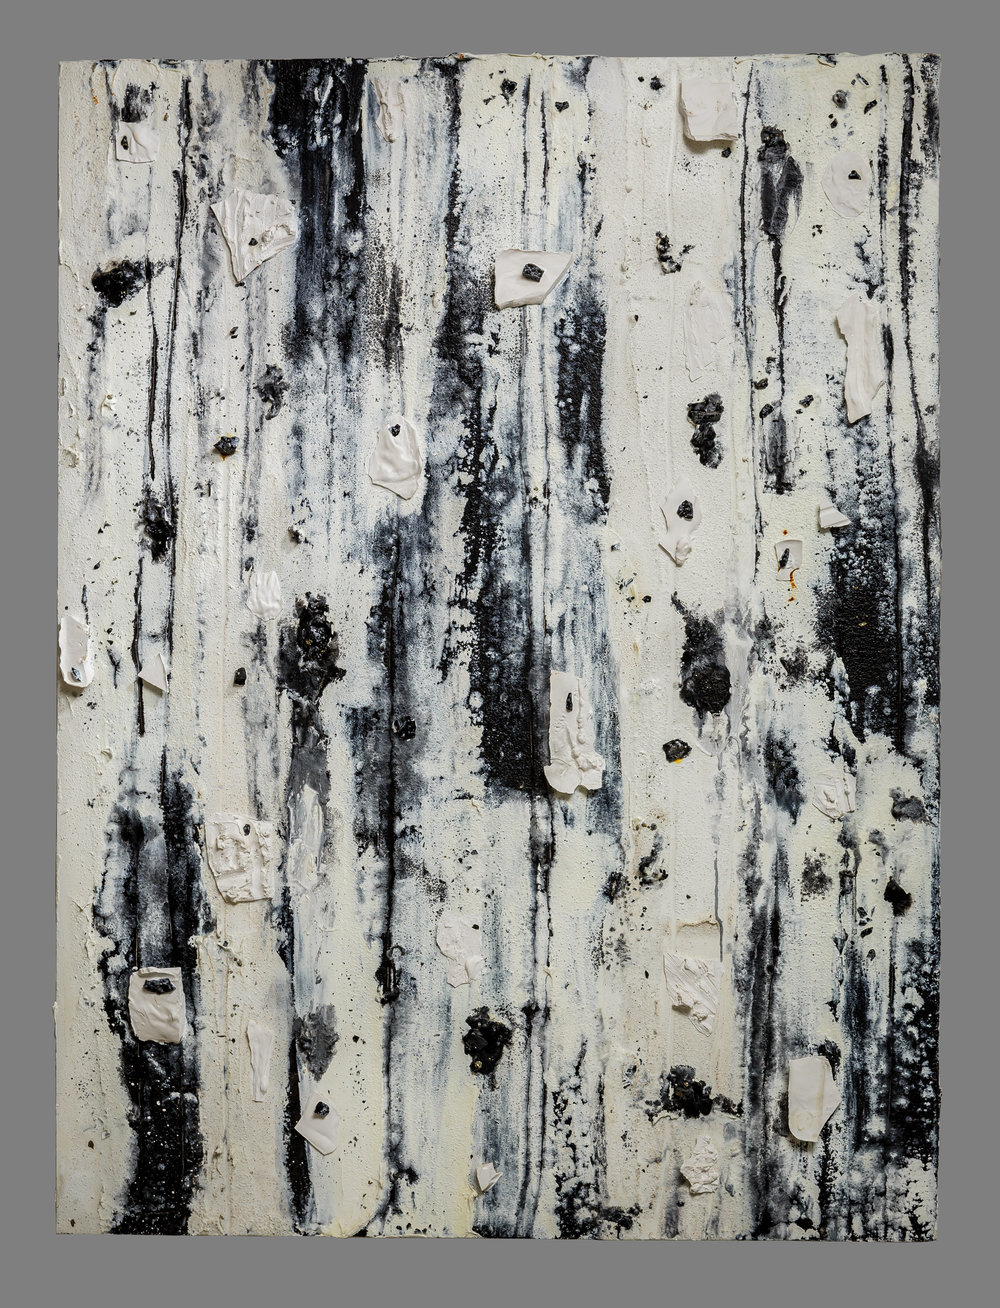 Blanc Mixed media on panel 48 x 36 in./ 121.9 x 91.4 cm.